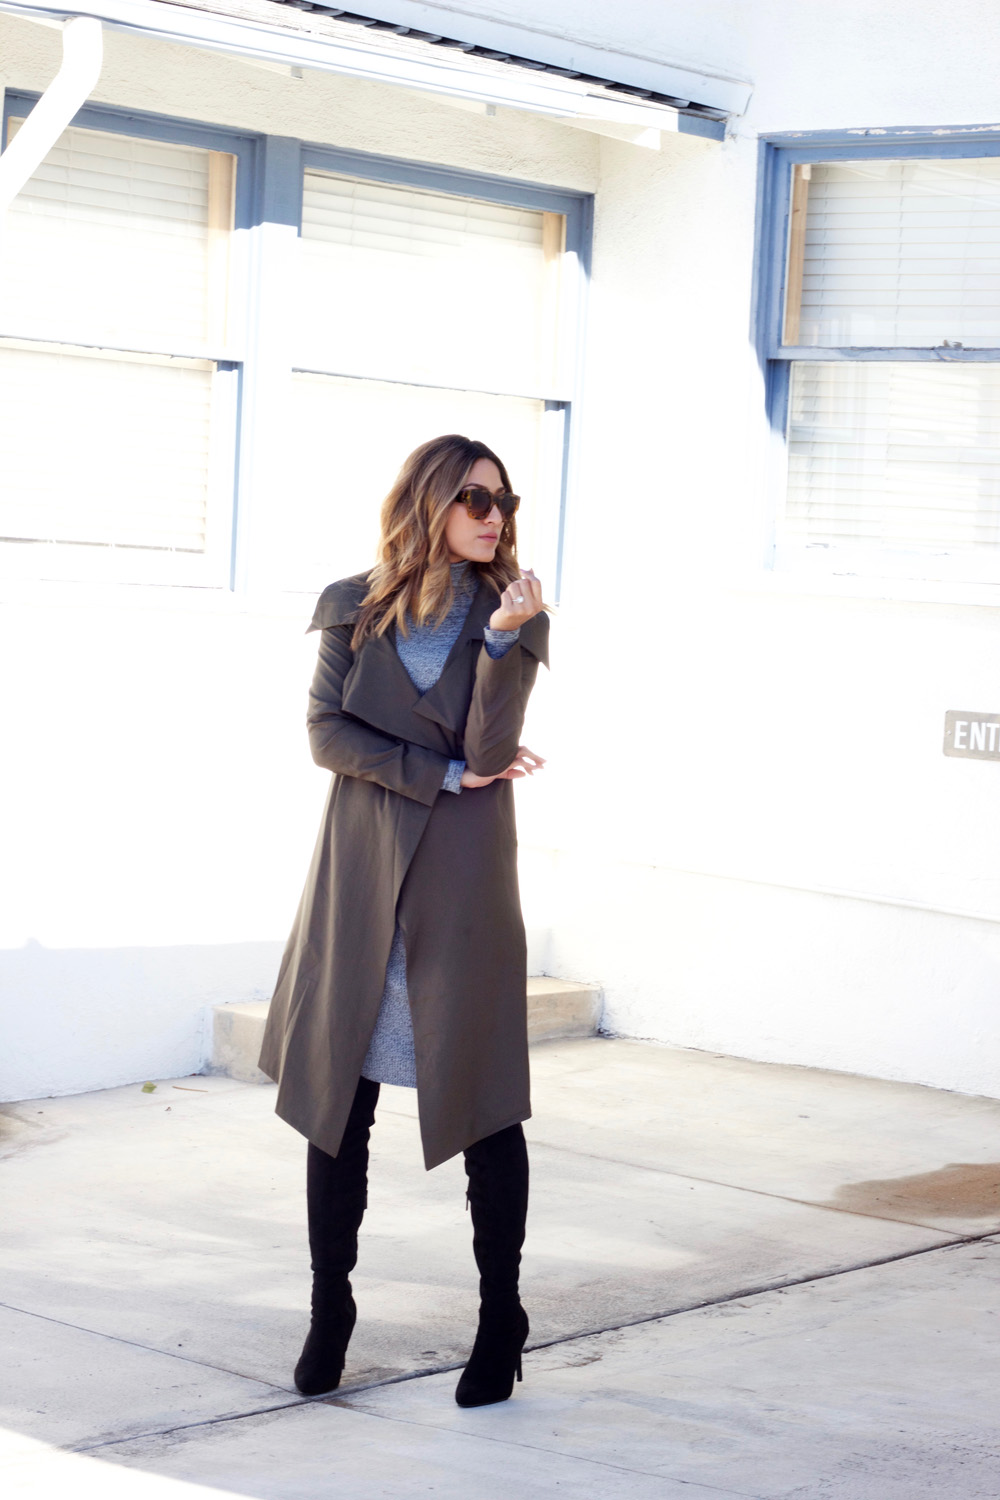 windsor, coat, trench coat, body con dress, knee high boots, ootd, melrodstyle, neutrals, la blogger, refinery 29, who what wear, style list, latina blogger, mexican blogger, bloggers, trending, ,streestyle